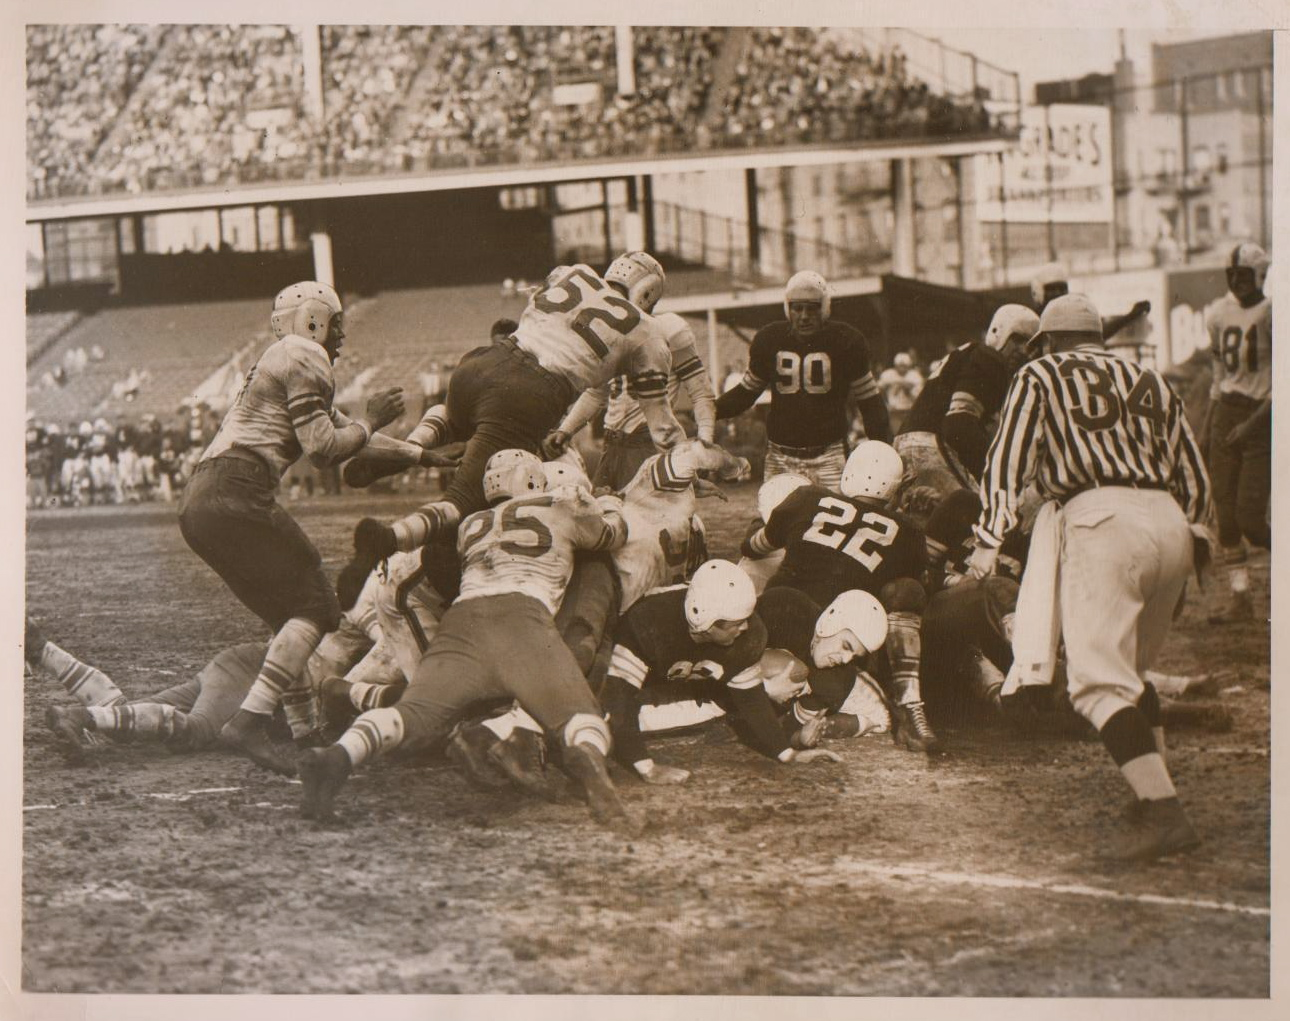 AAFC Action-Browns vs. Dodgers 1948